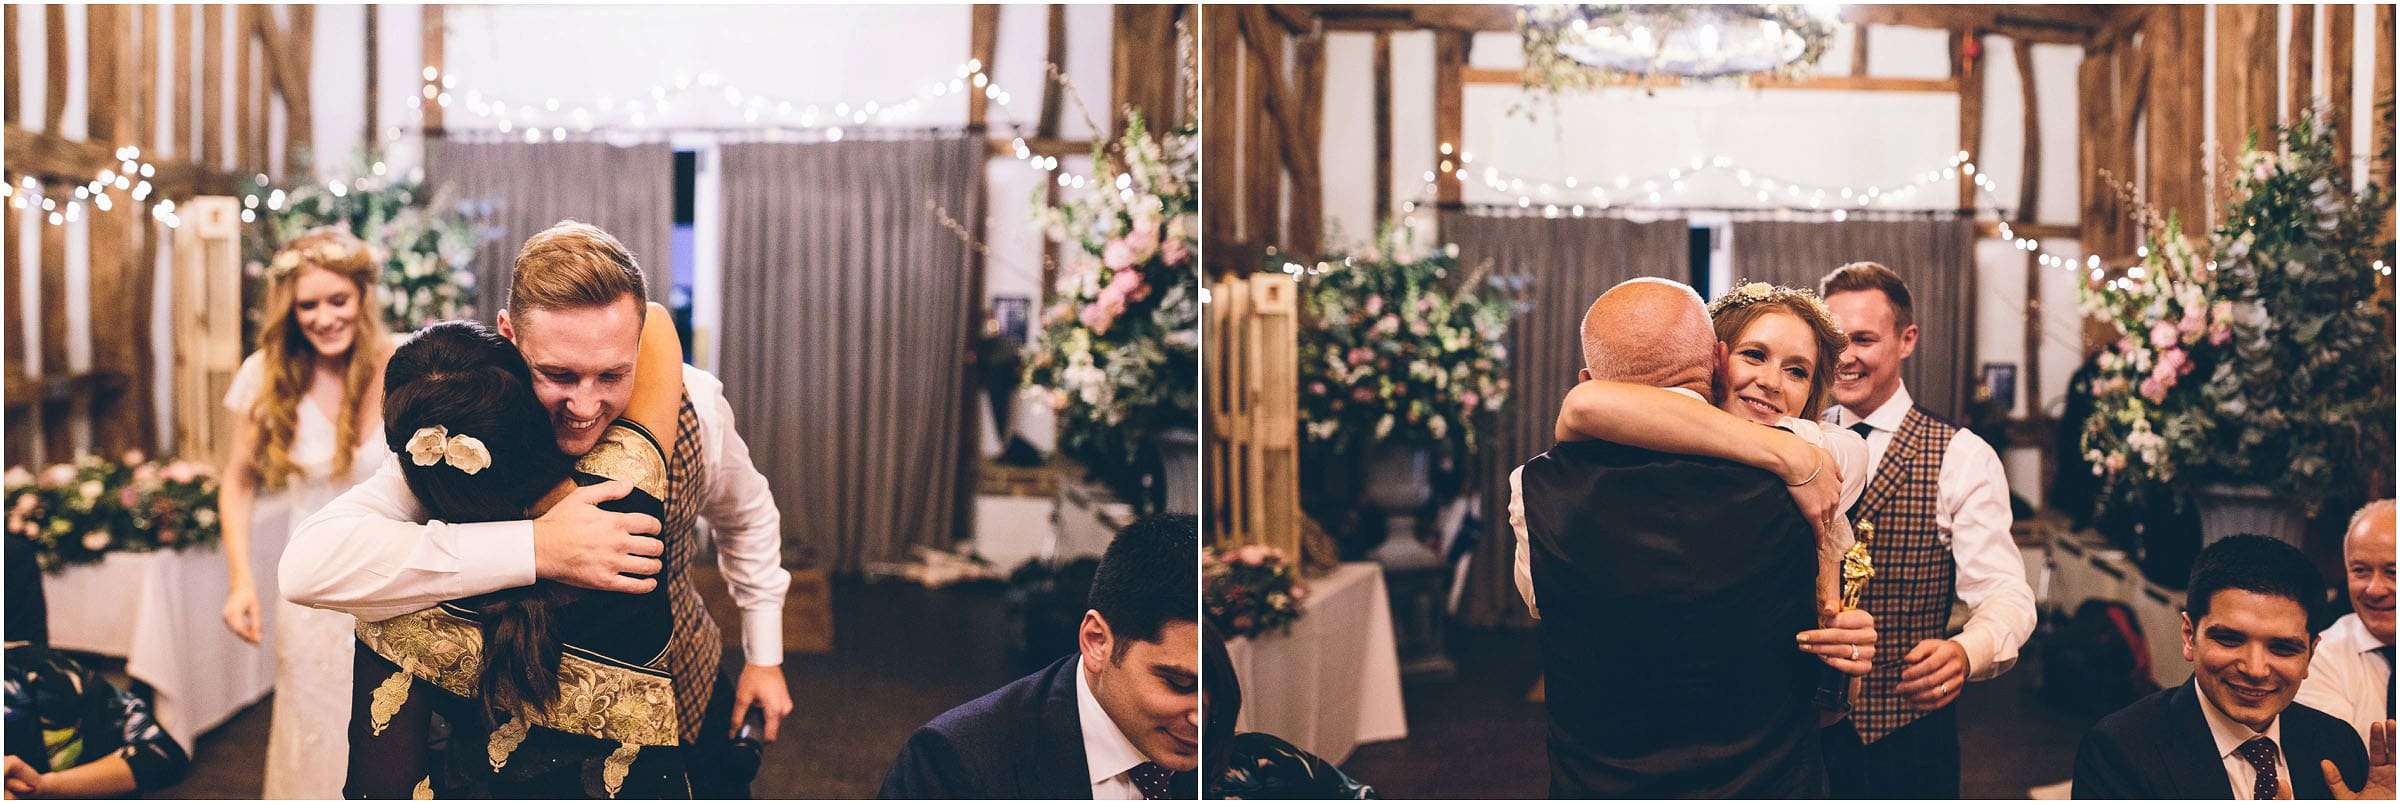 The_Olde_Bell_Wedding_Photography_0110